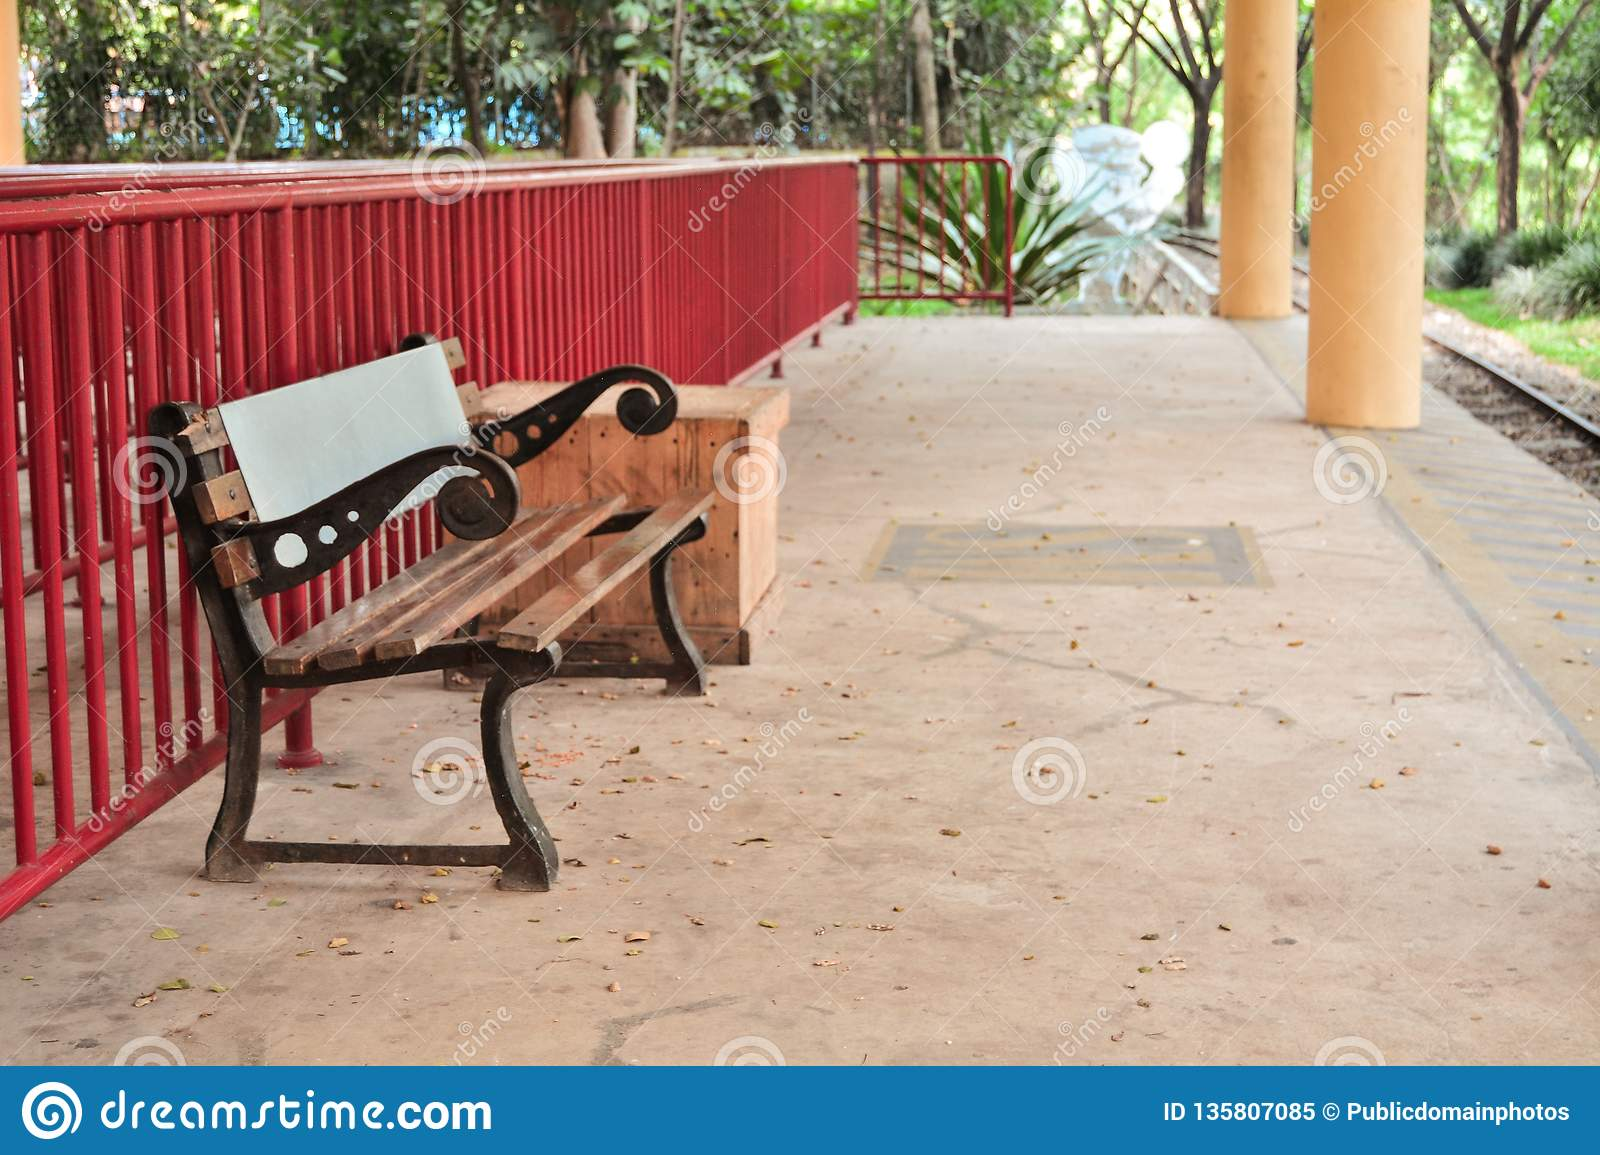 Public Domain Image Furniture Chair Outdoor Furniture Floor Free Public Domain